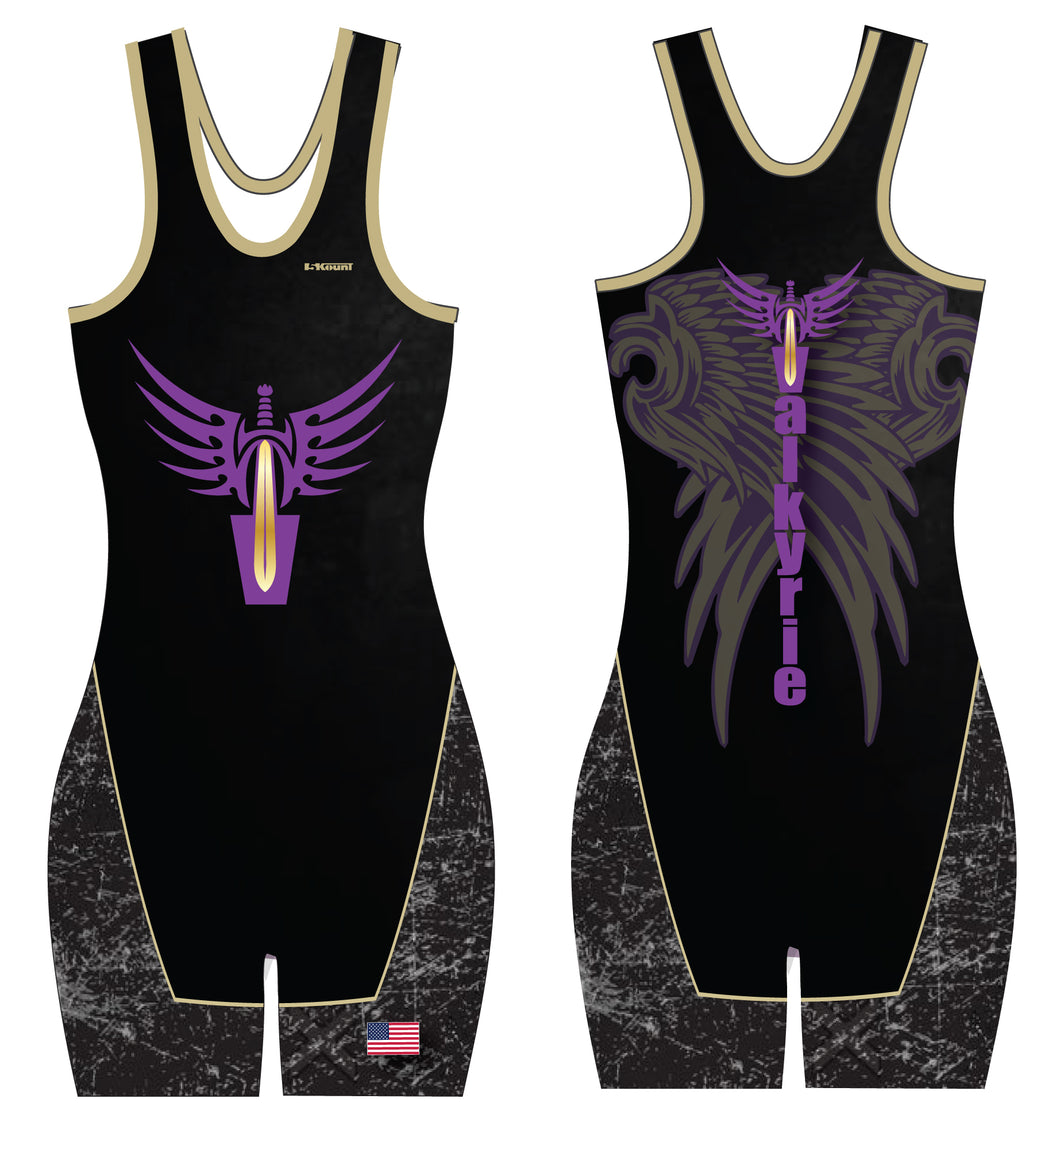 Valkyrie Girls Wrestling Sublimated Singlet - Black - 5KounT2018